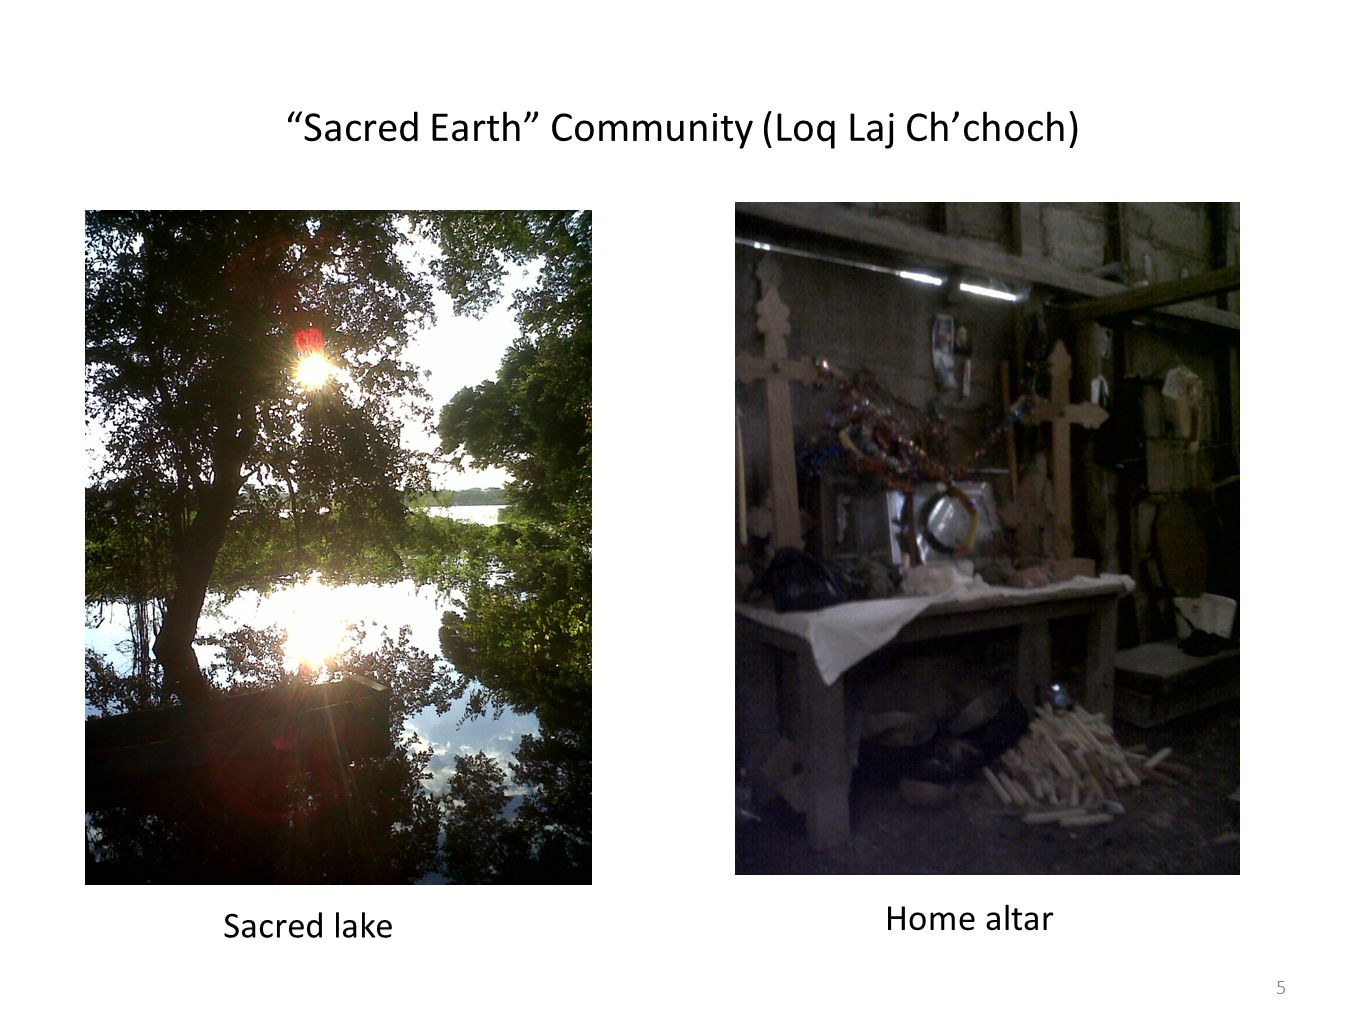 Sacred Earth Community (Loq Laj Ch'choch)